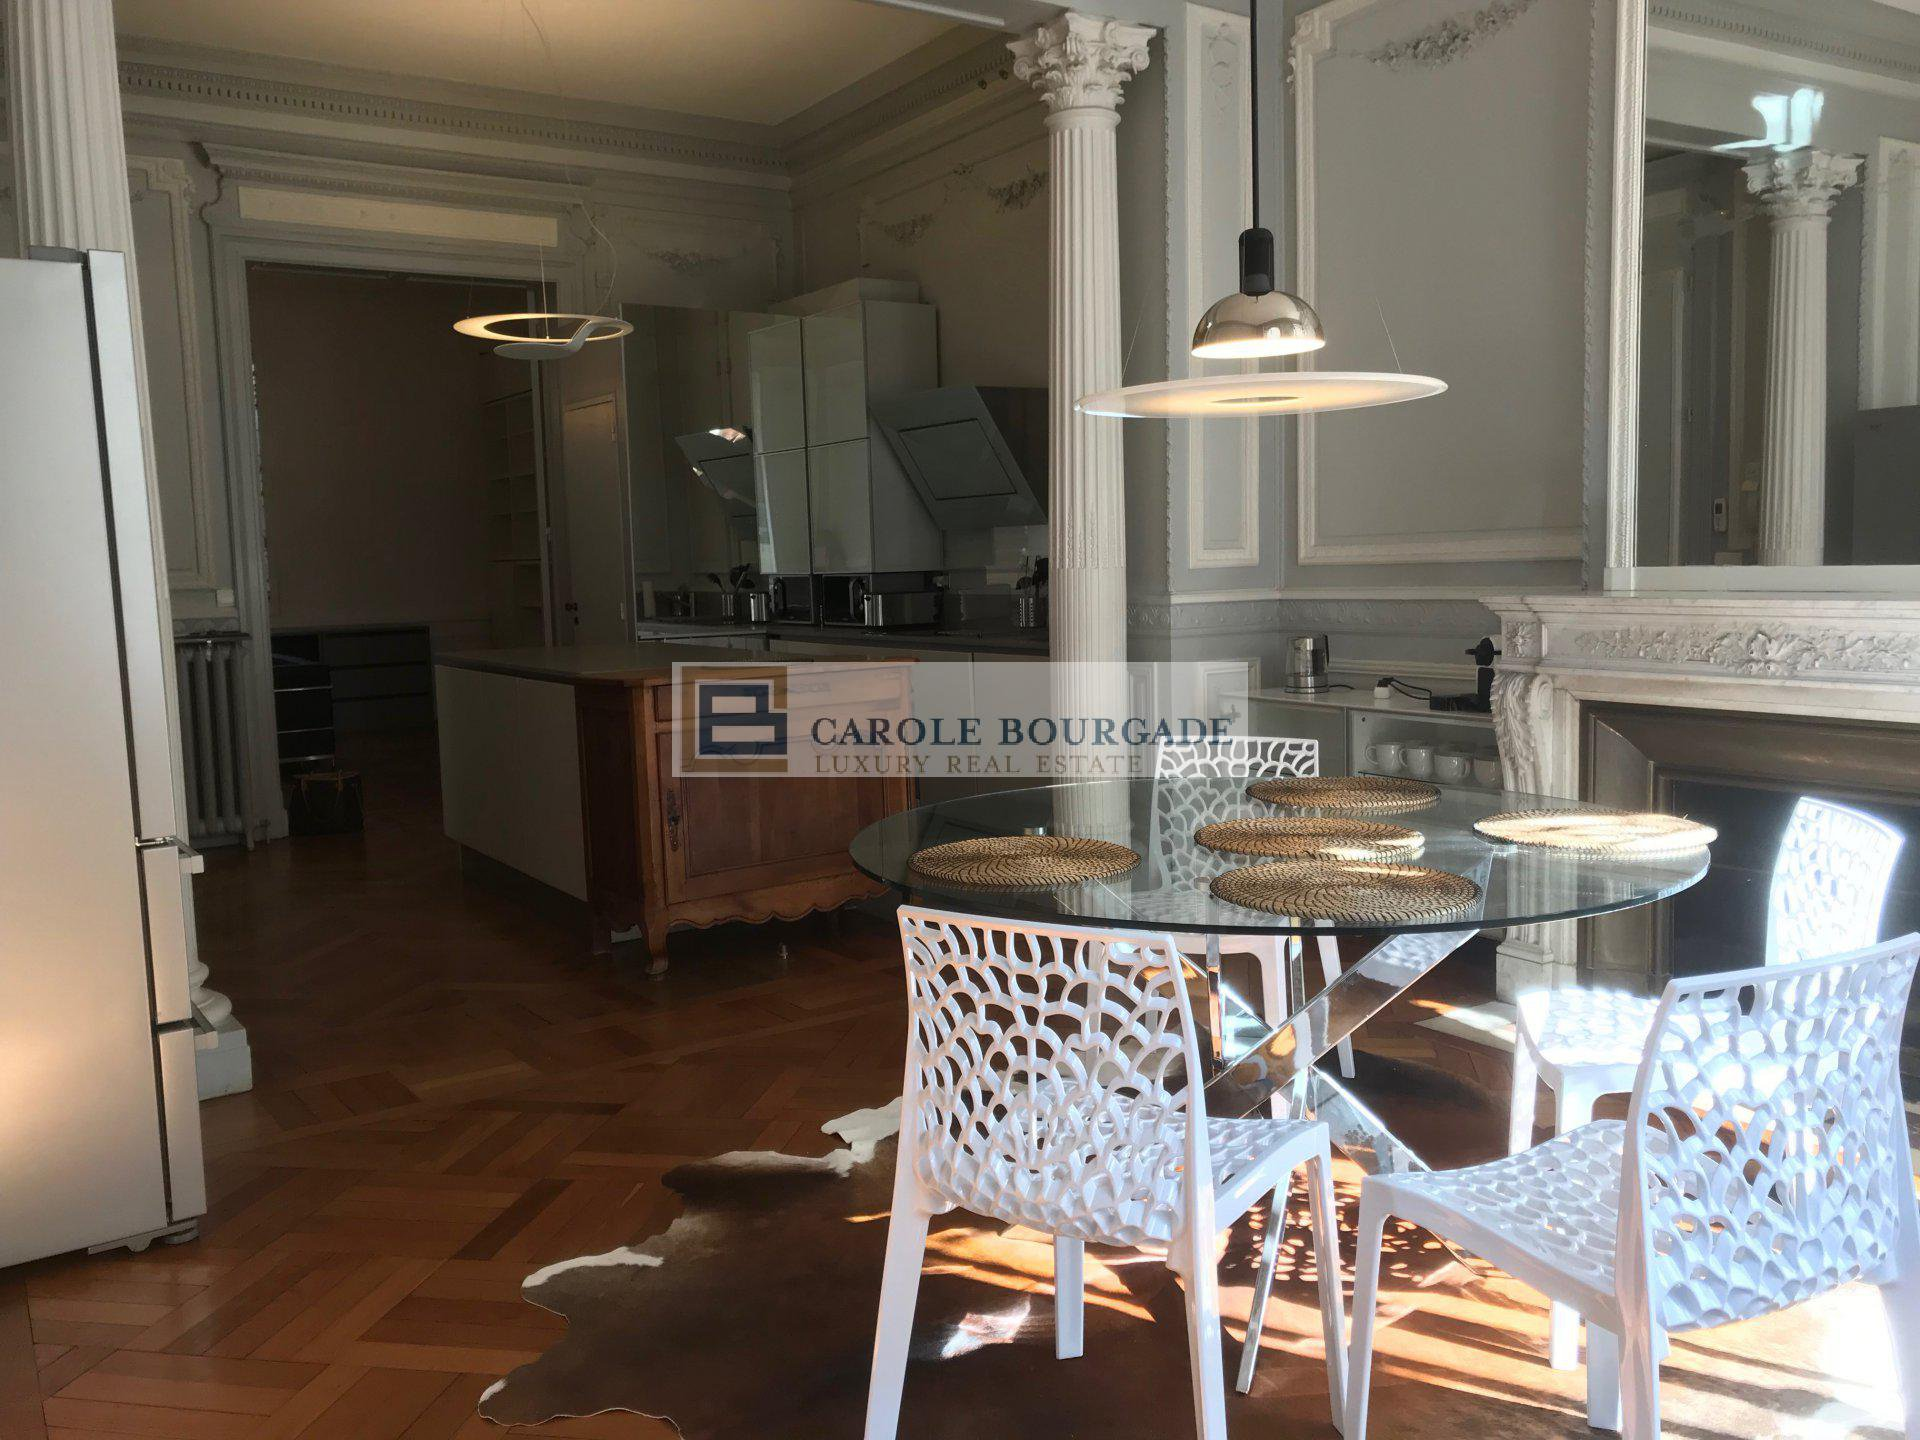 FOR RENT AVAILABLE VERY BEAUTIFUL APARTMENT T3 FURNISHED IN BORDEAUX CENTER